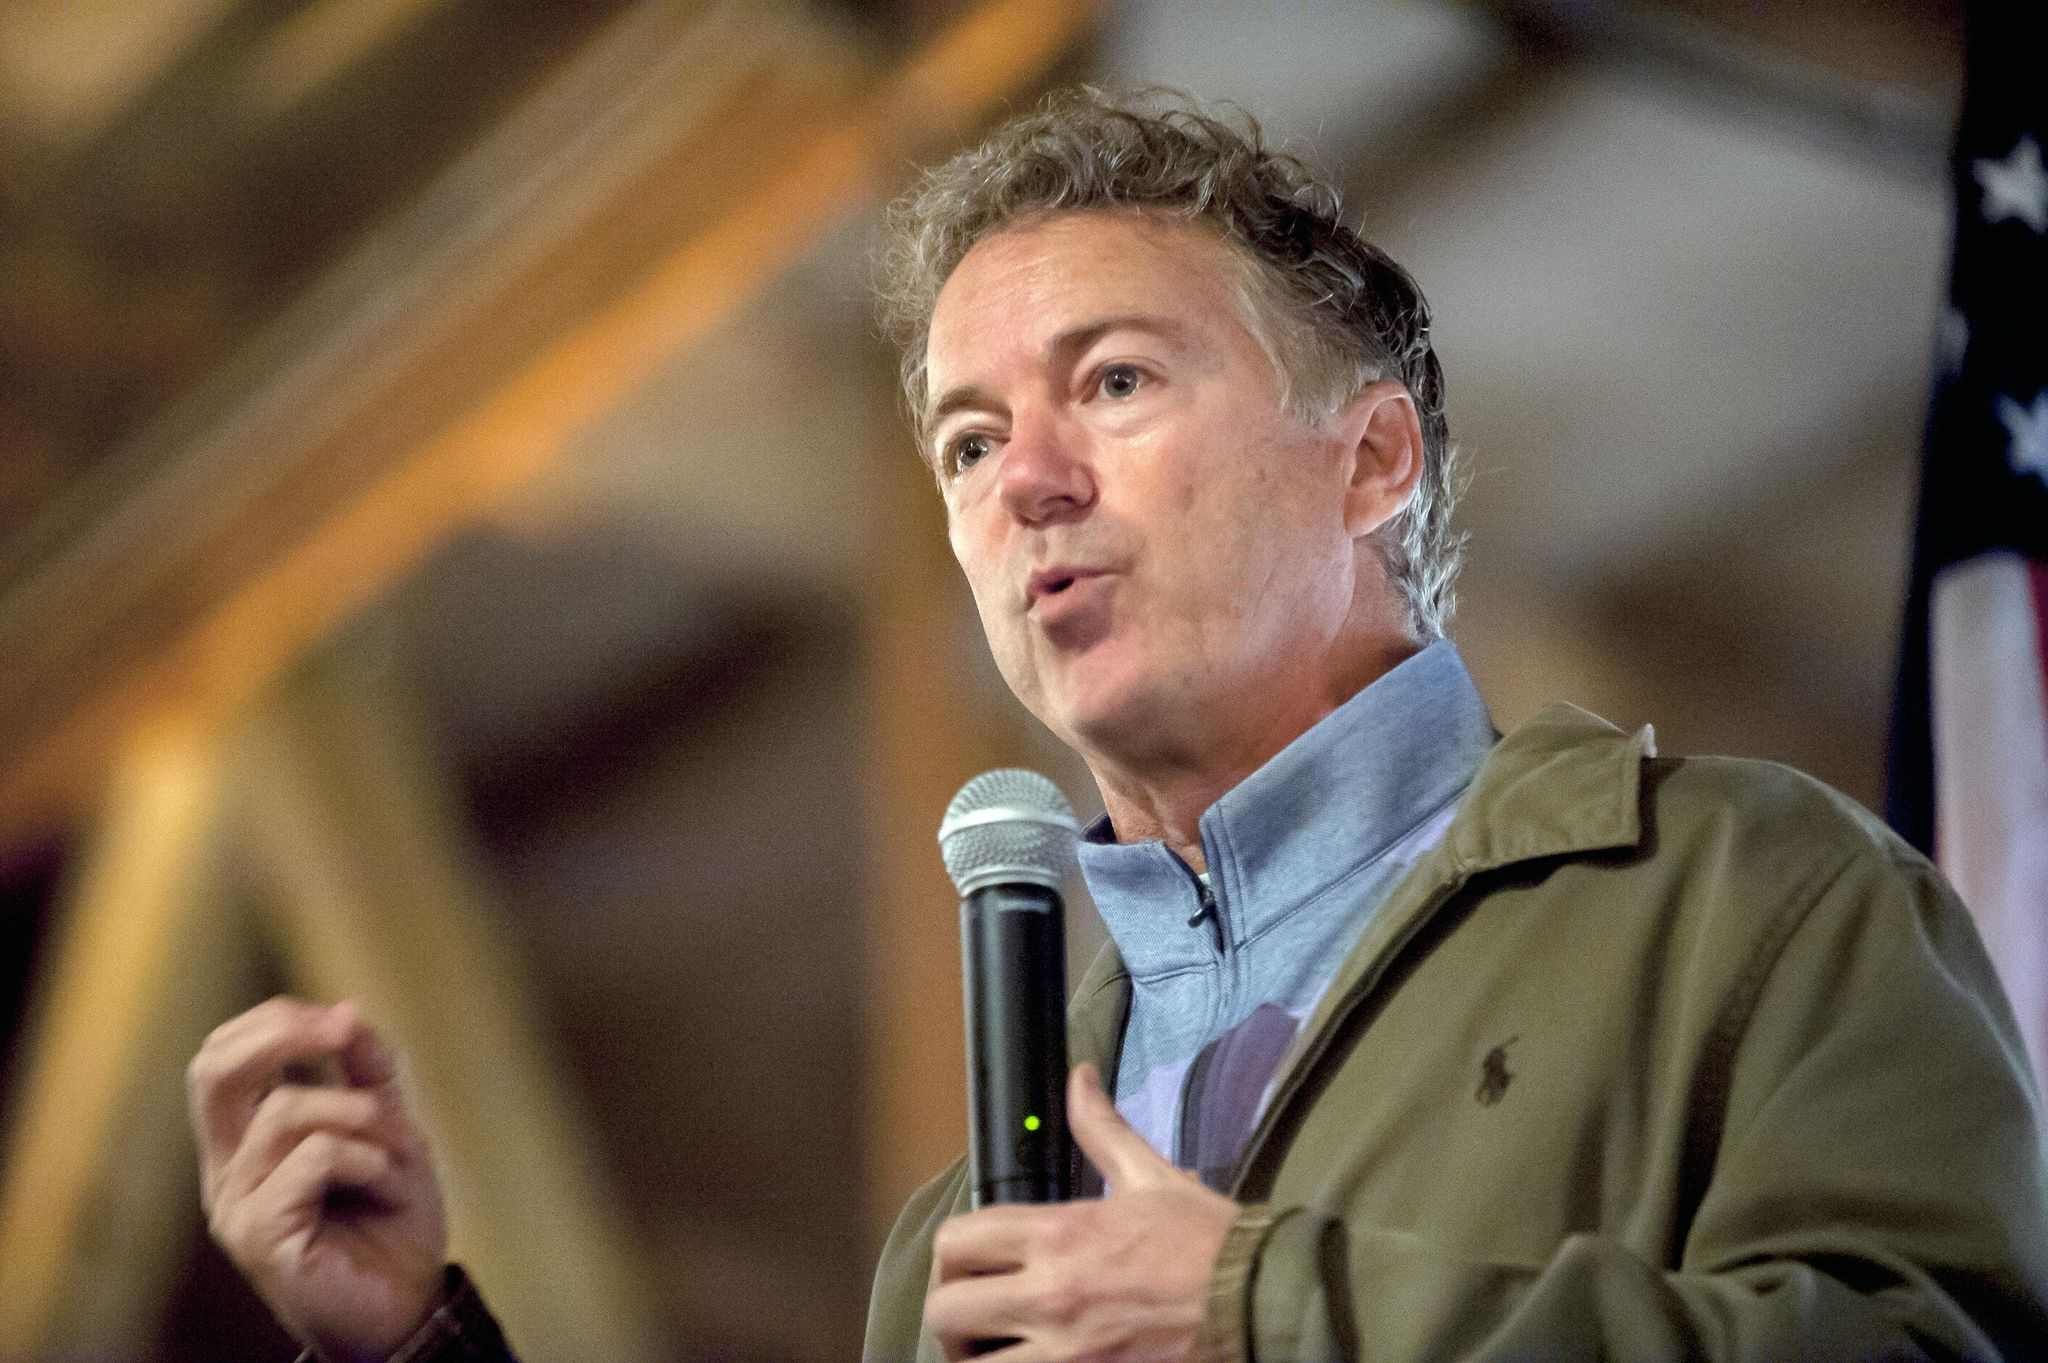 Rand Paul wants his political views barred from assault trial